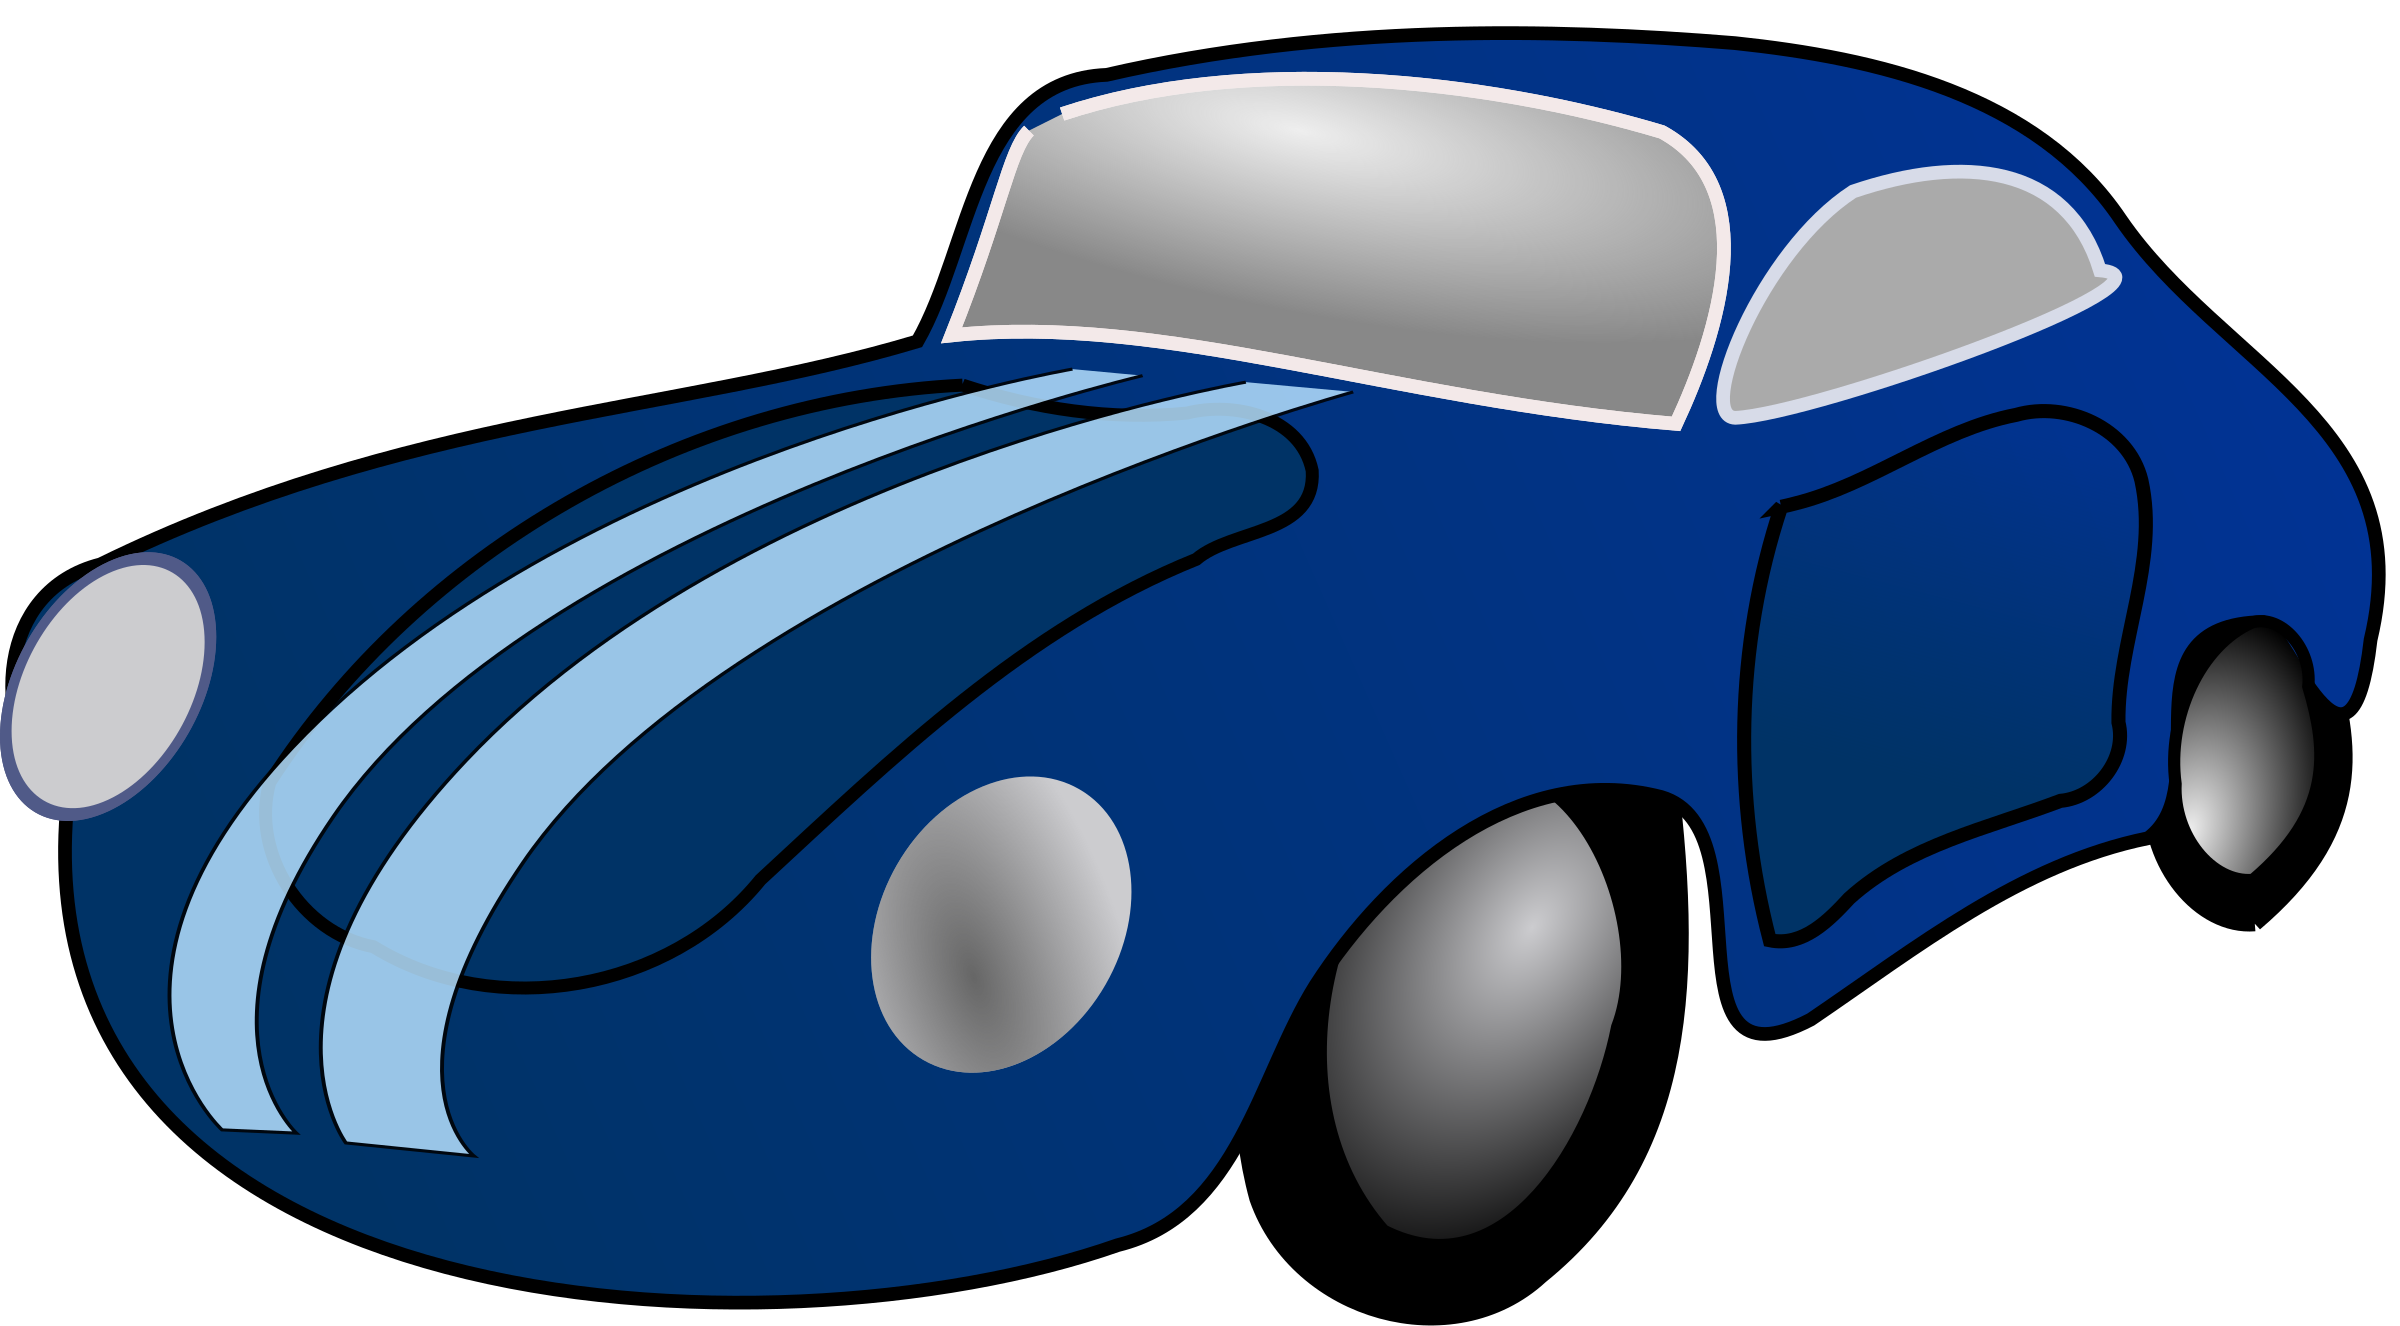 Bugatti Veyron Clipart At Getdrawingscom Free For Personal Use